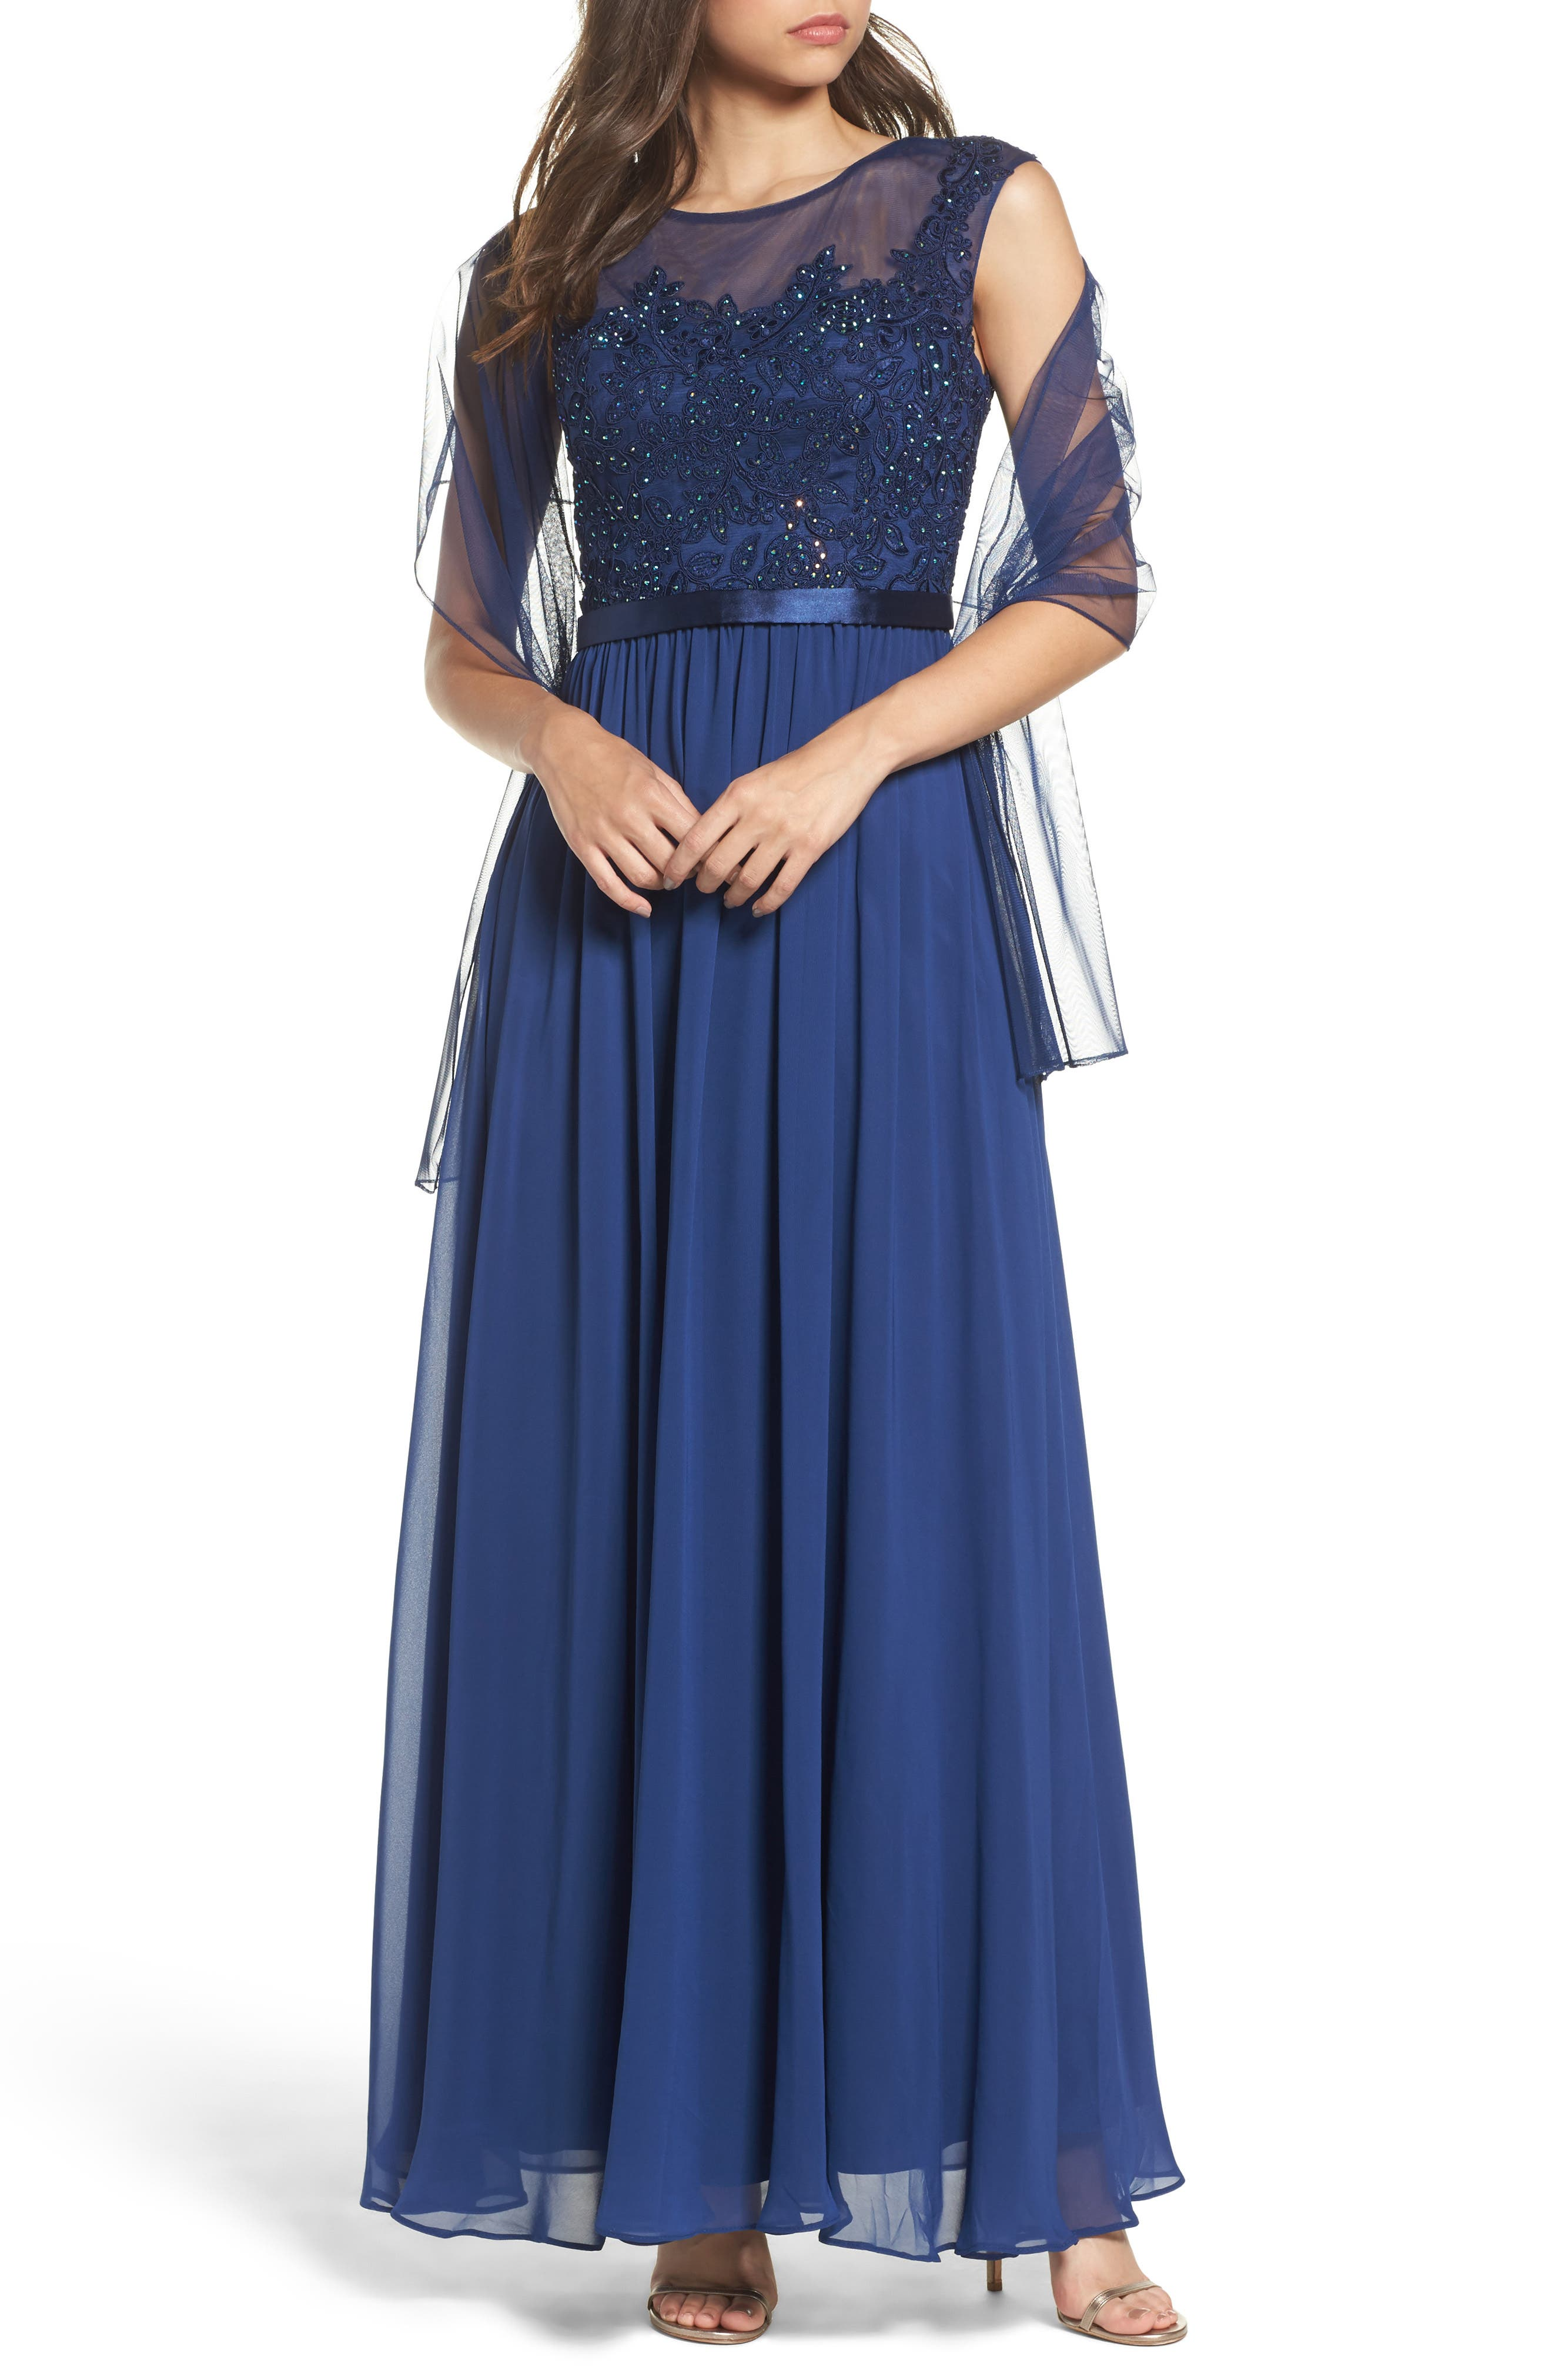 Xcape Embellished Bodice Mesh A-Line Gown,                         Main,                         color,